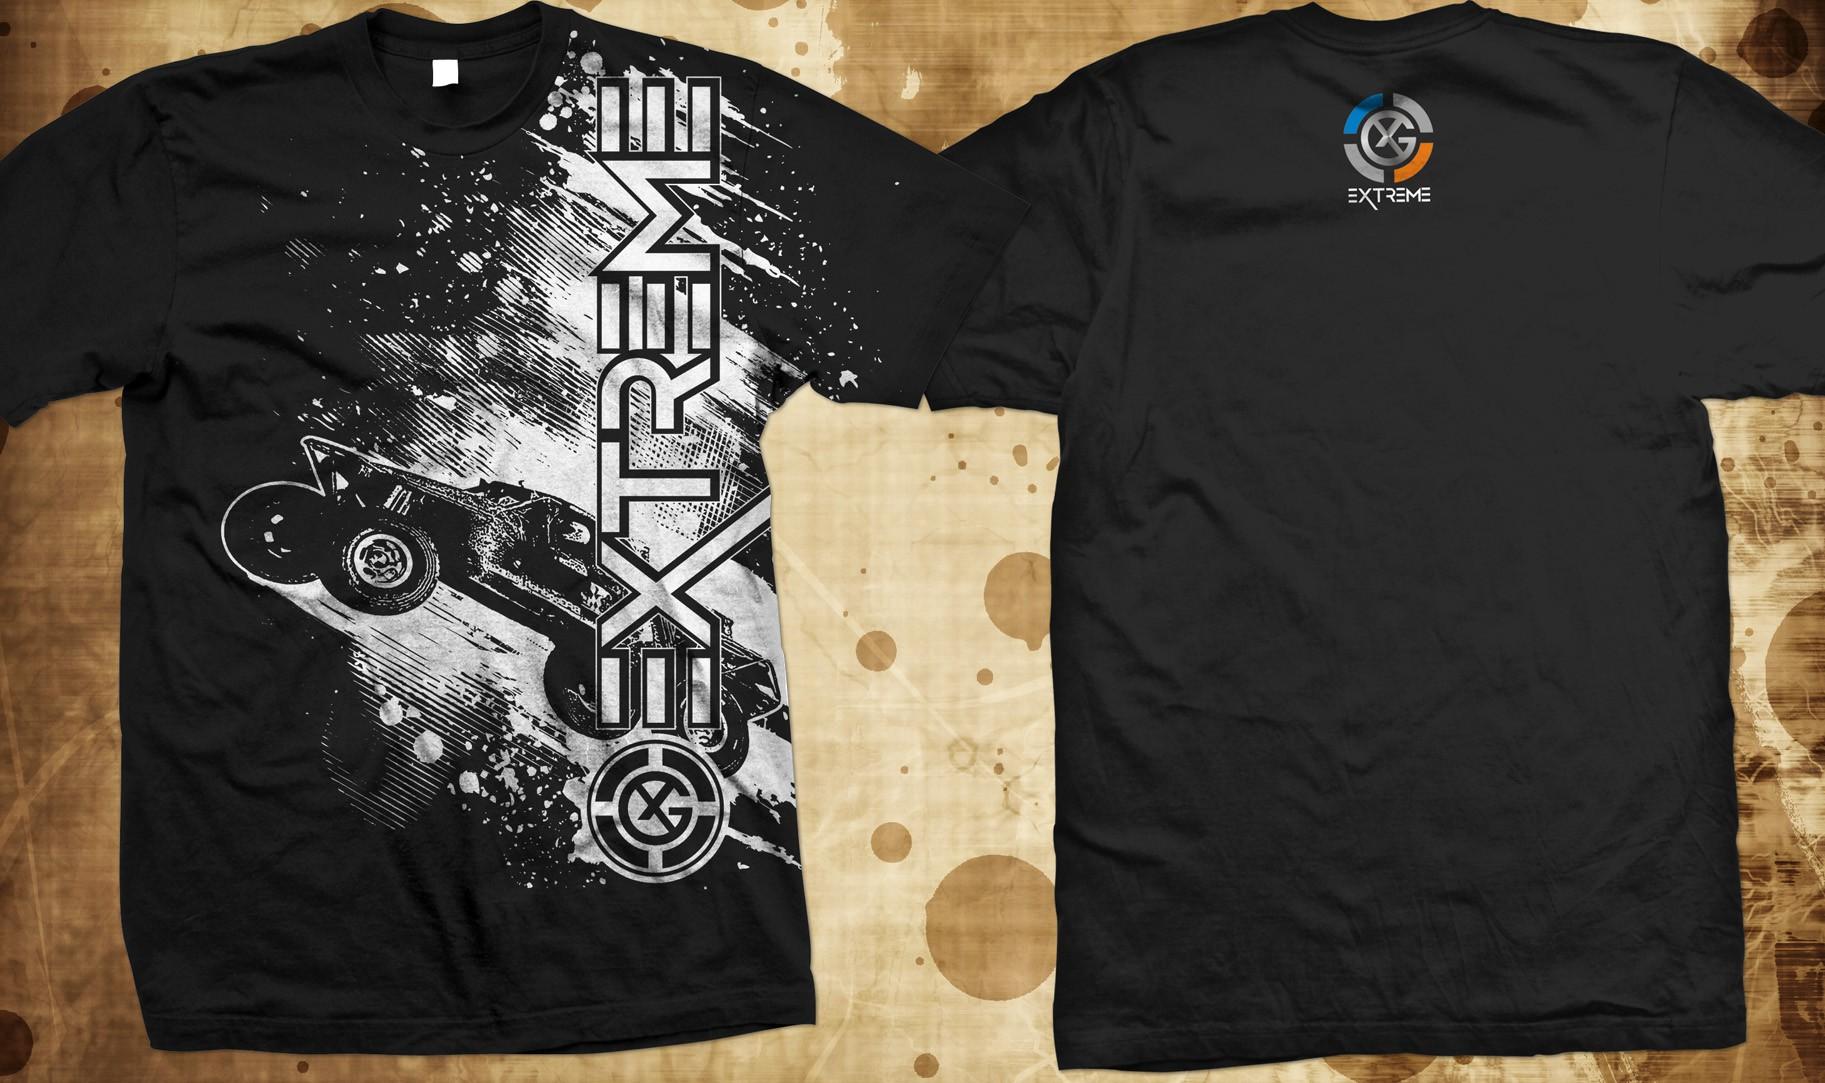 New t-shirt design wanted for O G Extreme